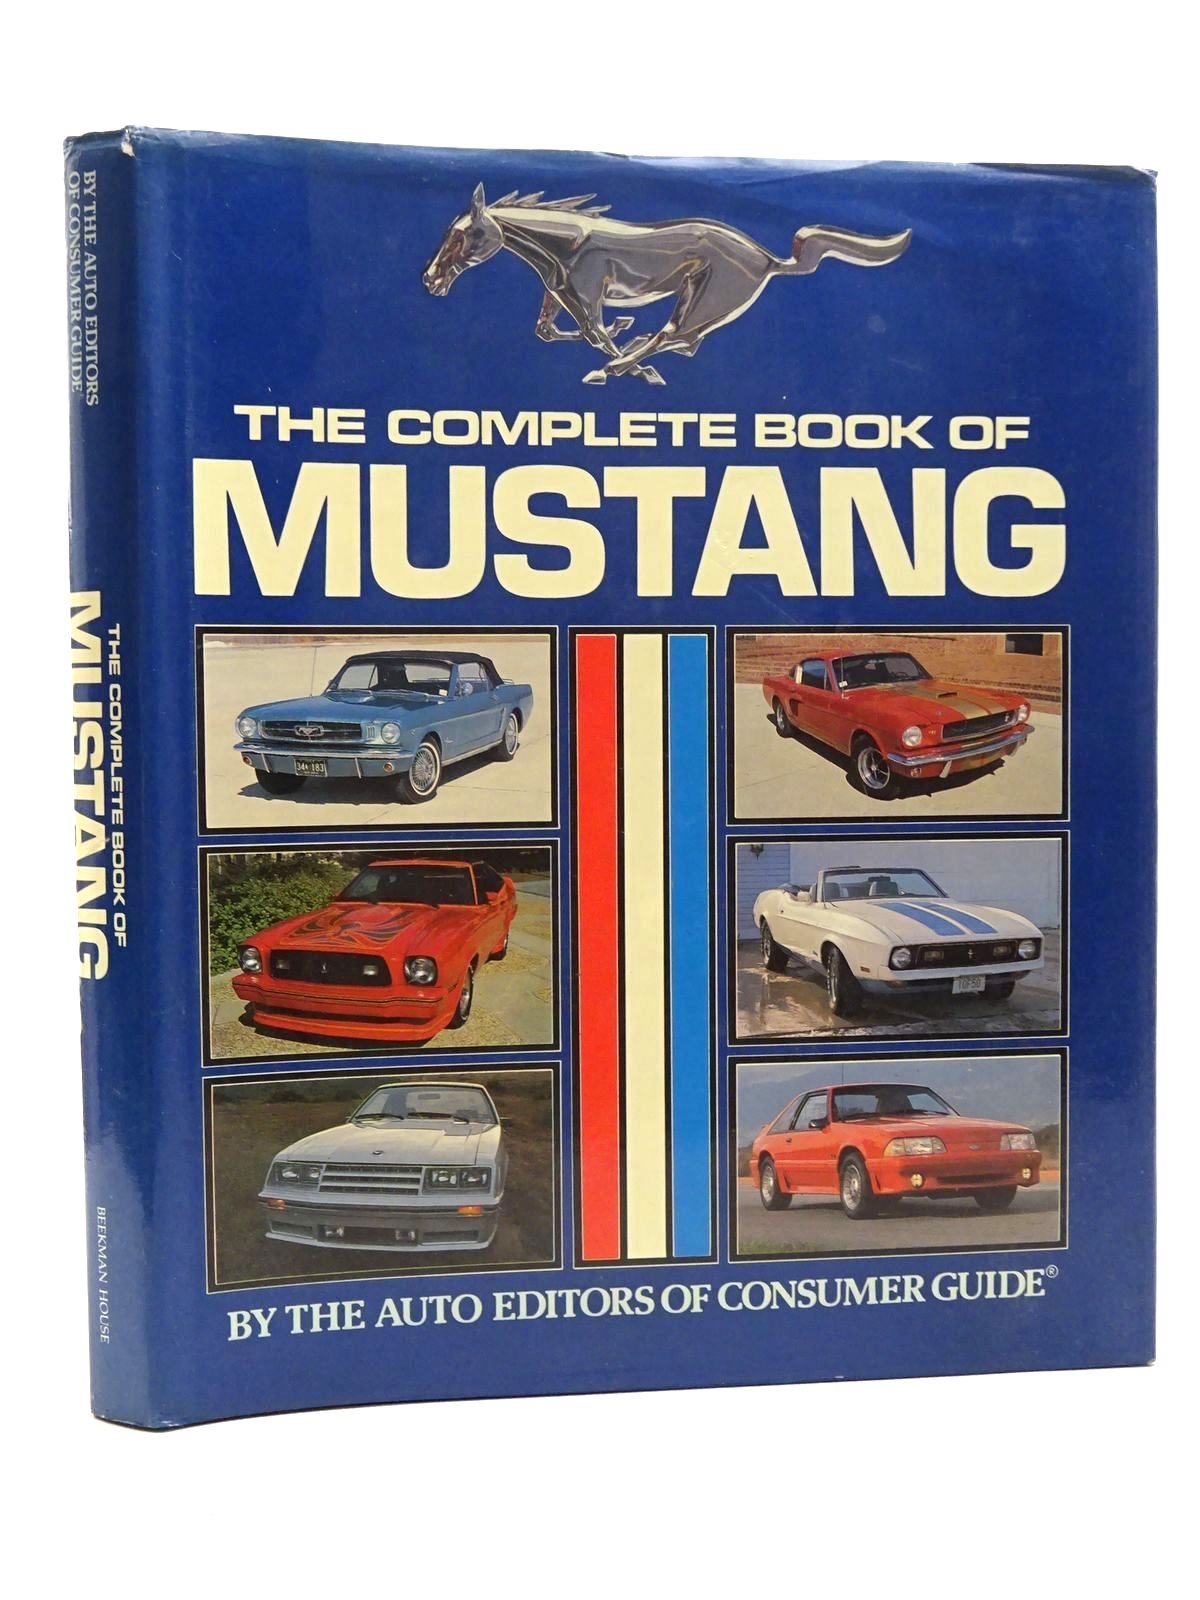 Photo of THE COMPLETE BOOK OF MUSTANG published by Beekman House (STOCK CODE: 1610520)  for sale by Stella & Rose's Books